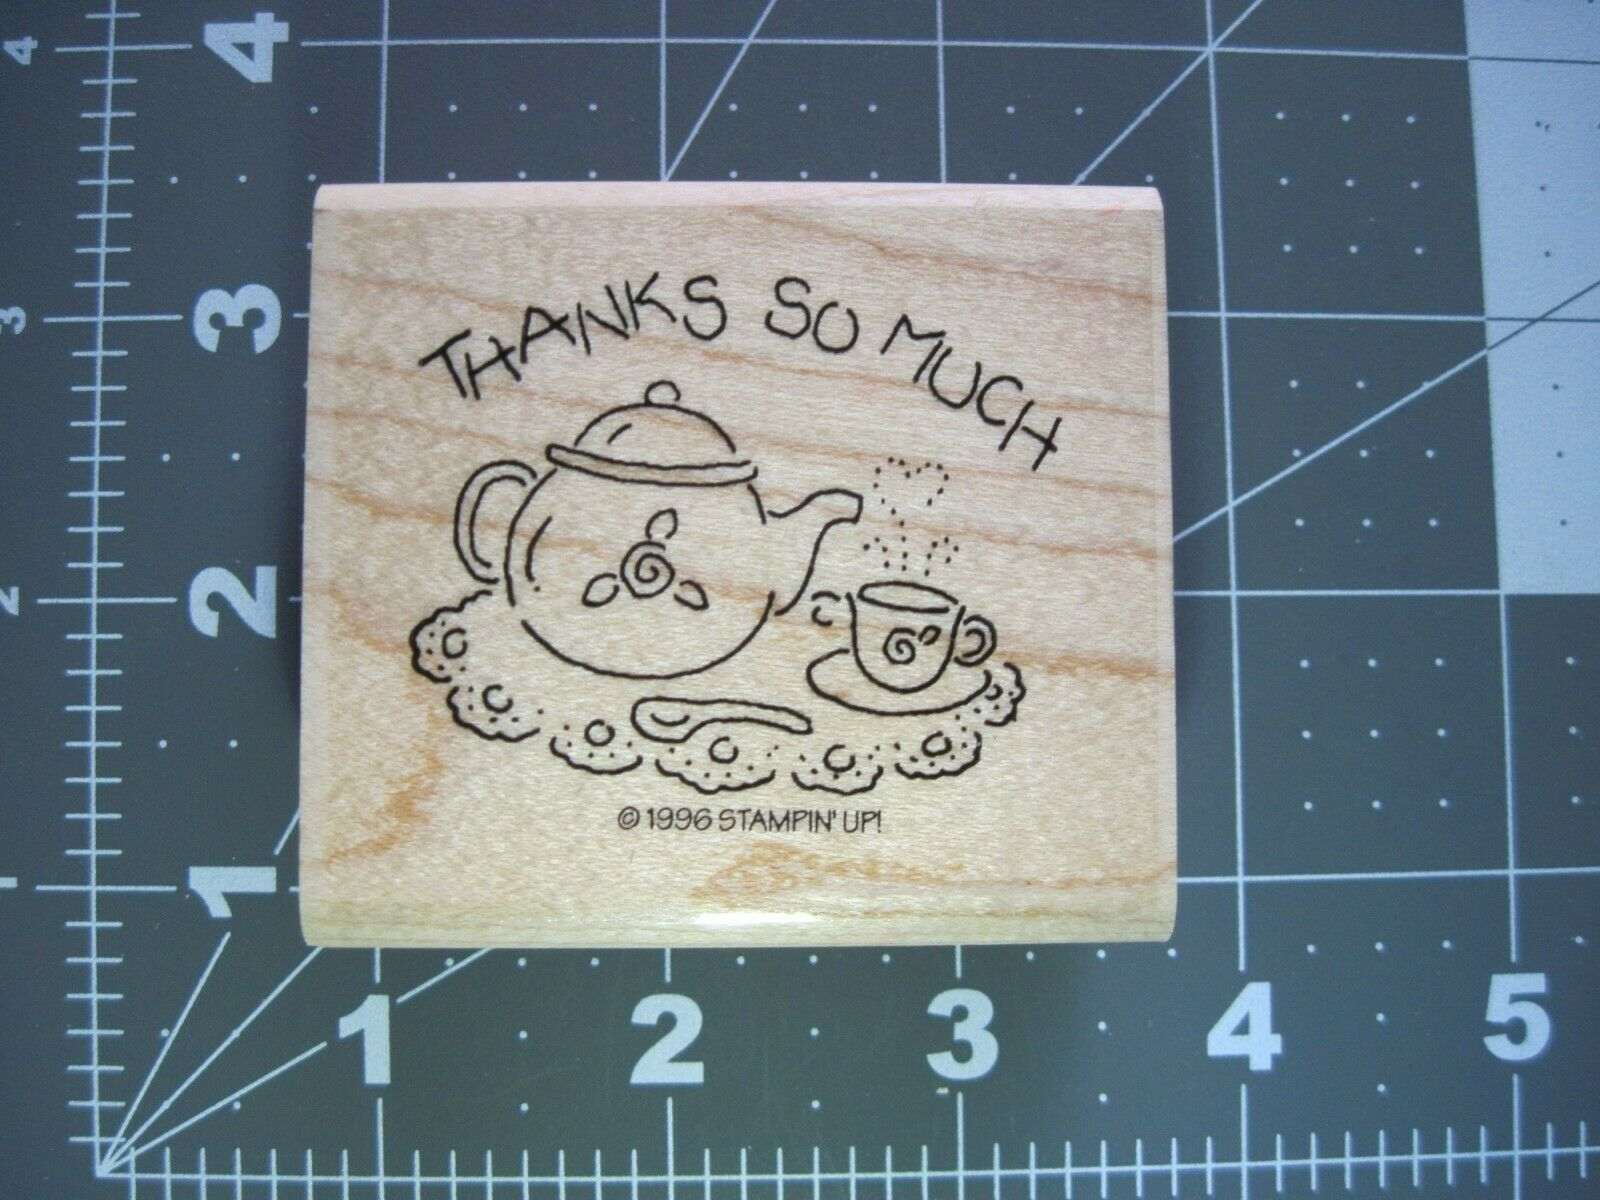 Stampin Up Retired Thanks So Much Rose Bud Tea Set Party 1996 Rubber Stamp - $2.25